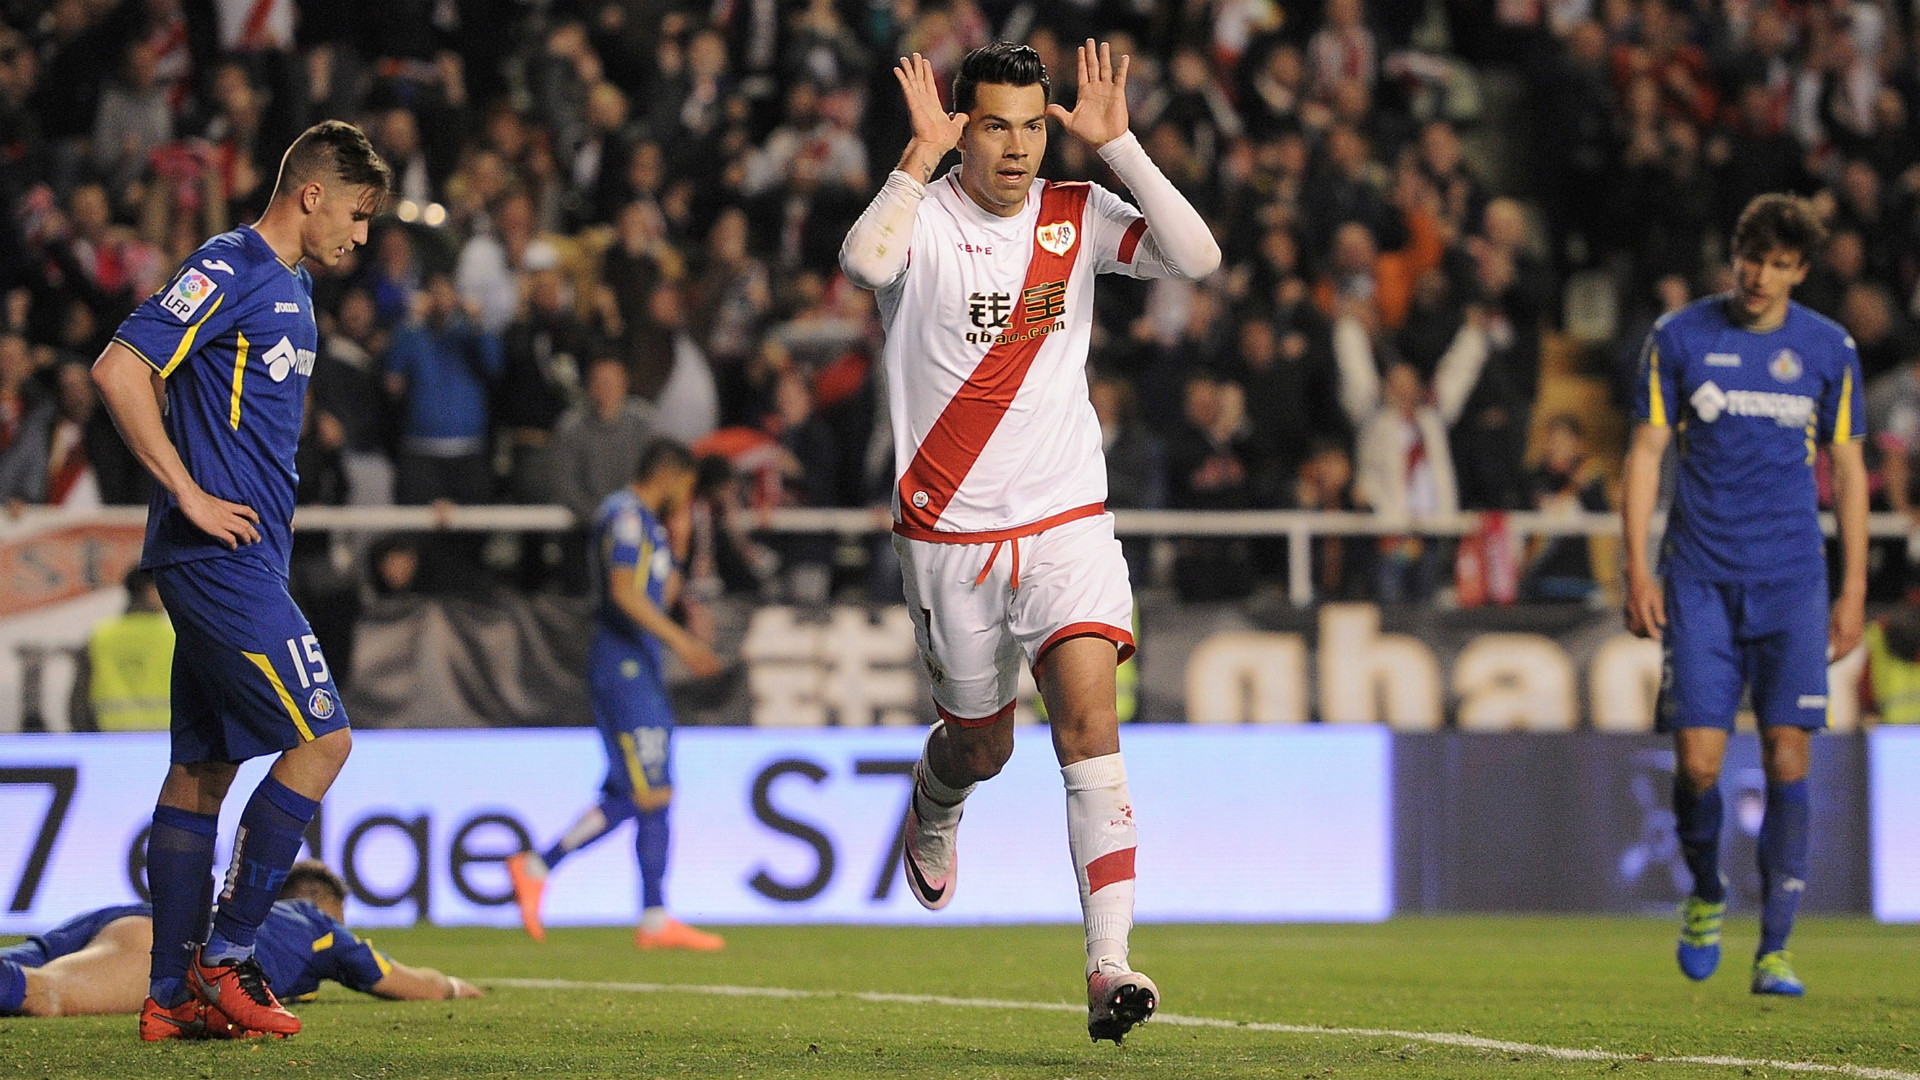 Rayo vallecano vs atletico madrid betting preview goal ethereum crypto currency news